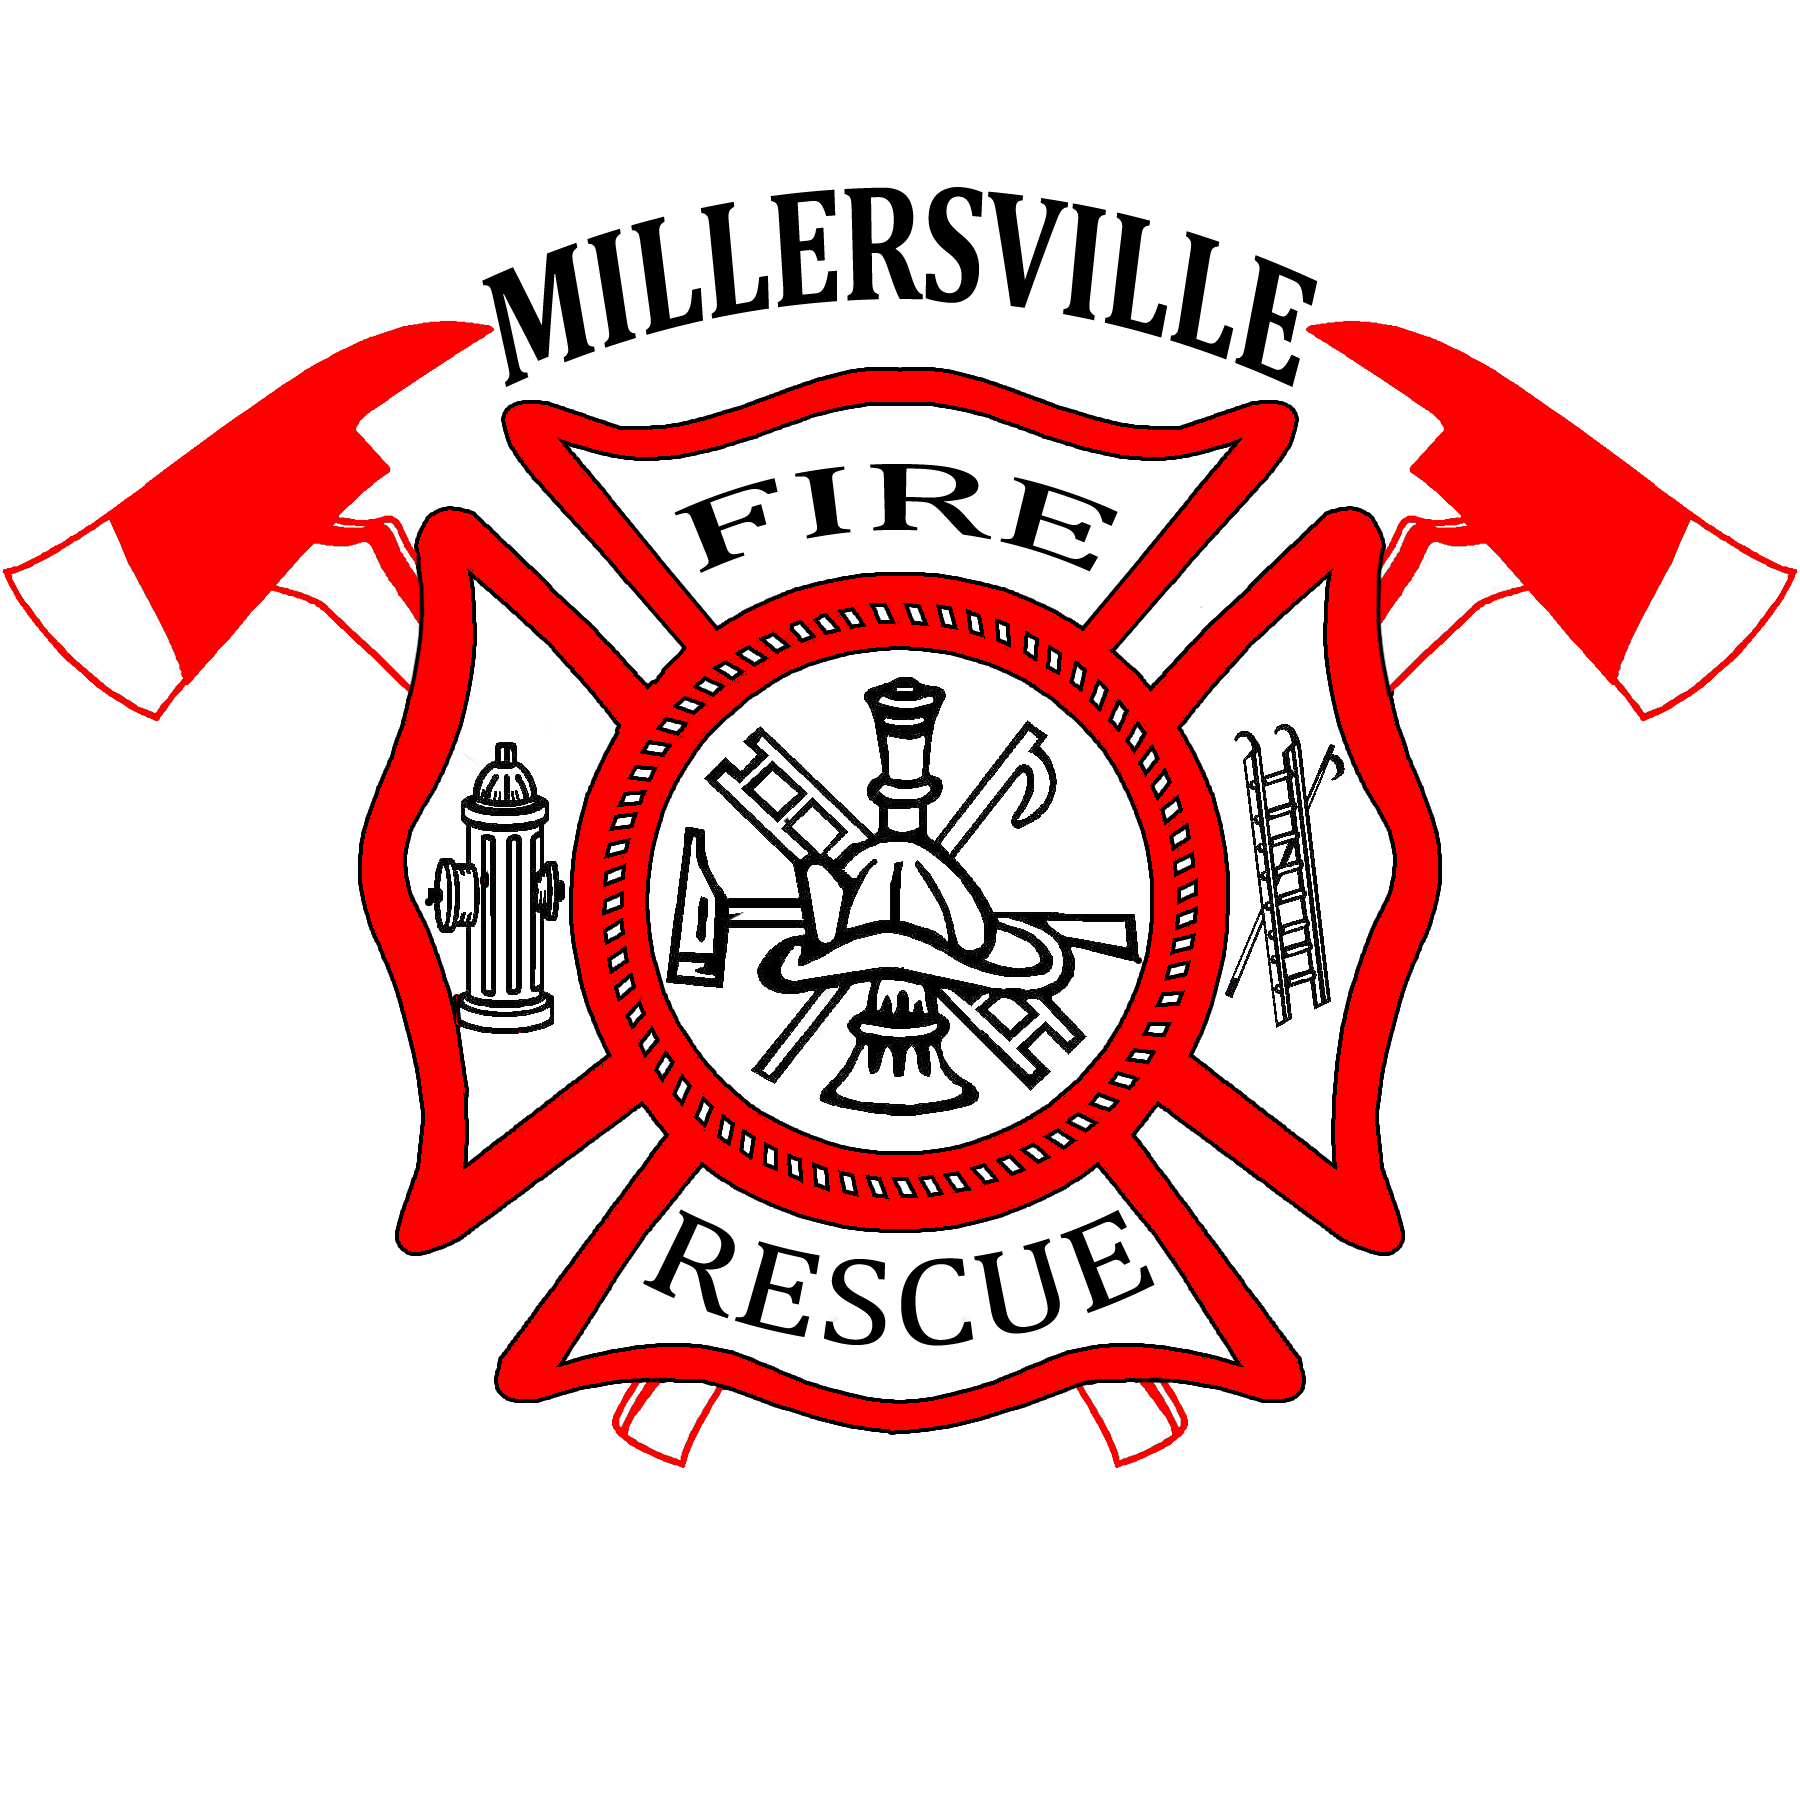 Firefighter clipart emblem And fighting Fire Collection fire